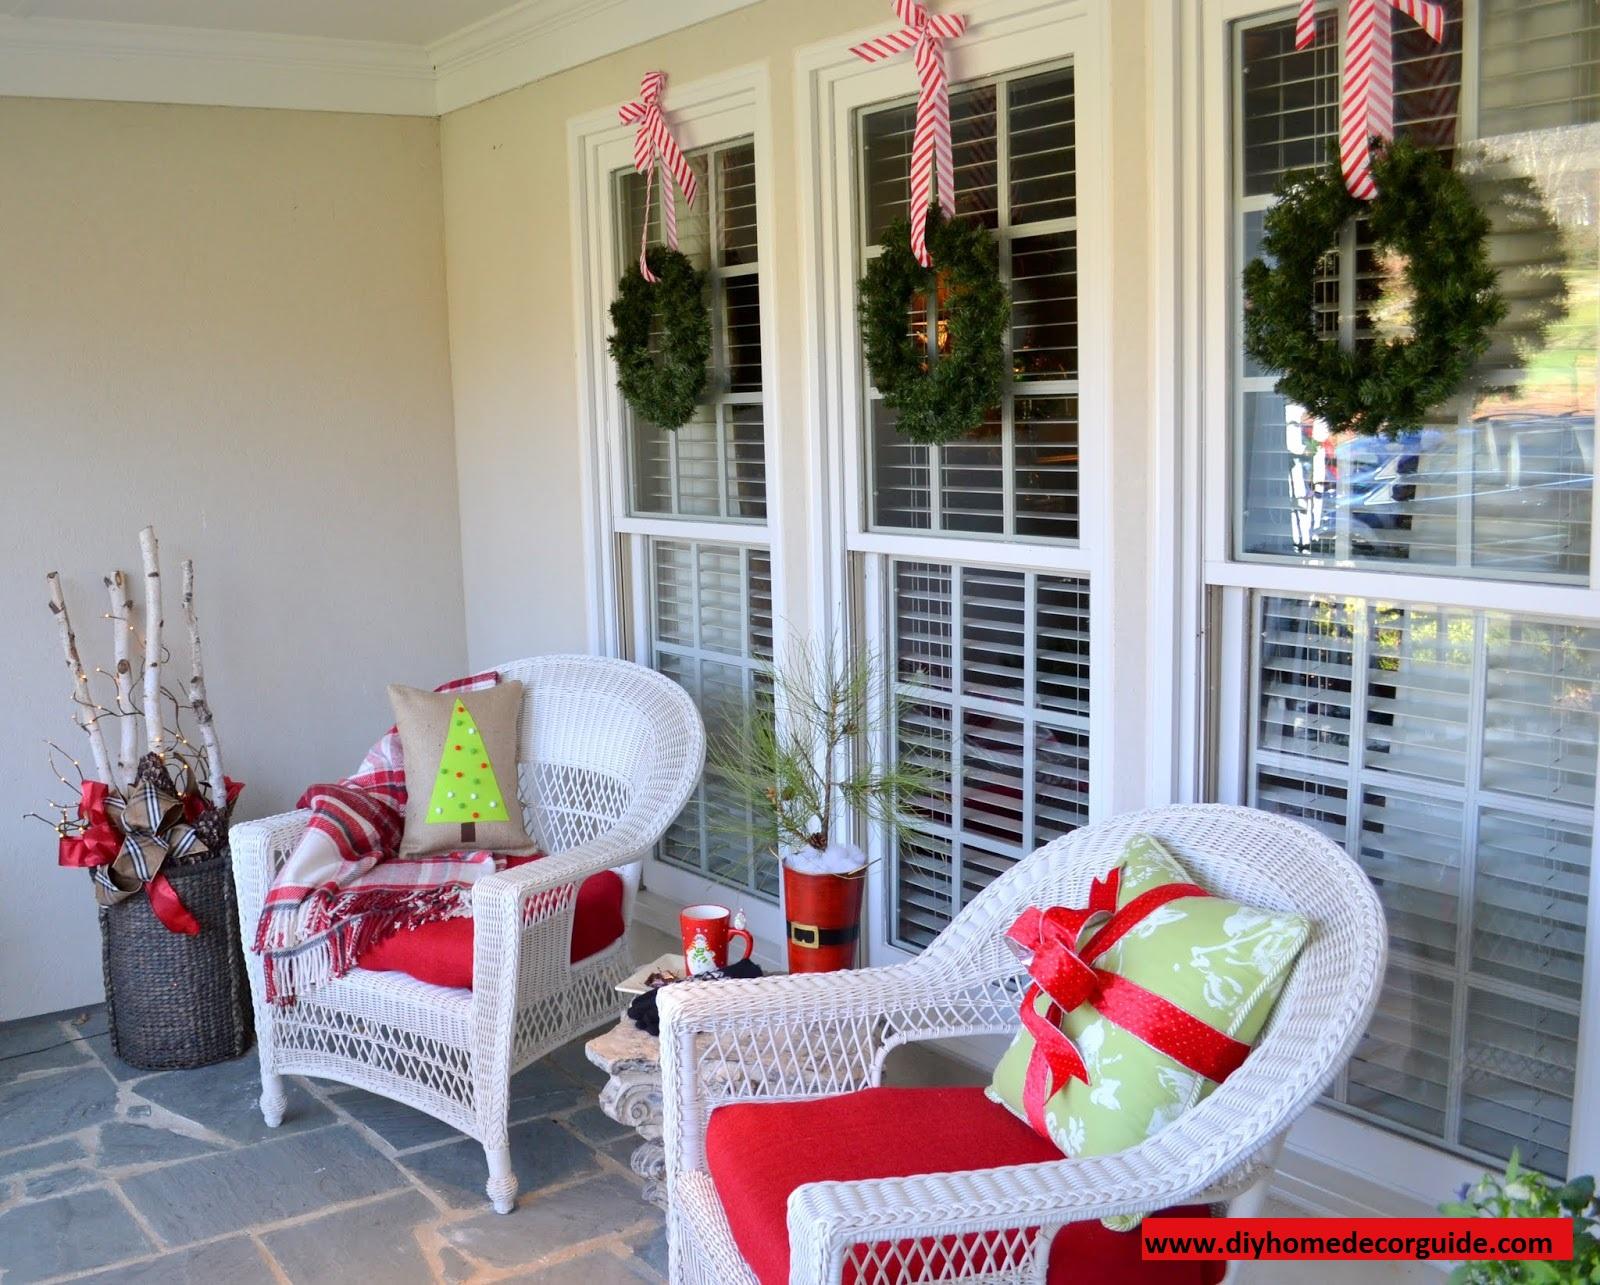 20 diy outdoor christmas decorations ideas 2014 saveenlarge - Easy Outdoor Christmas Decorations